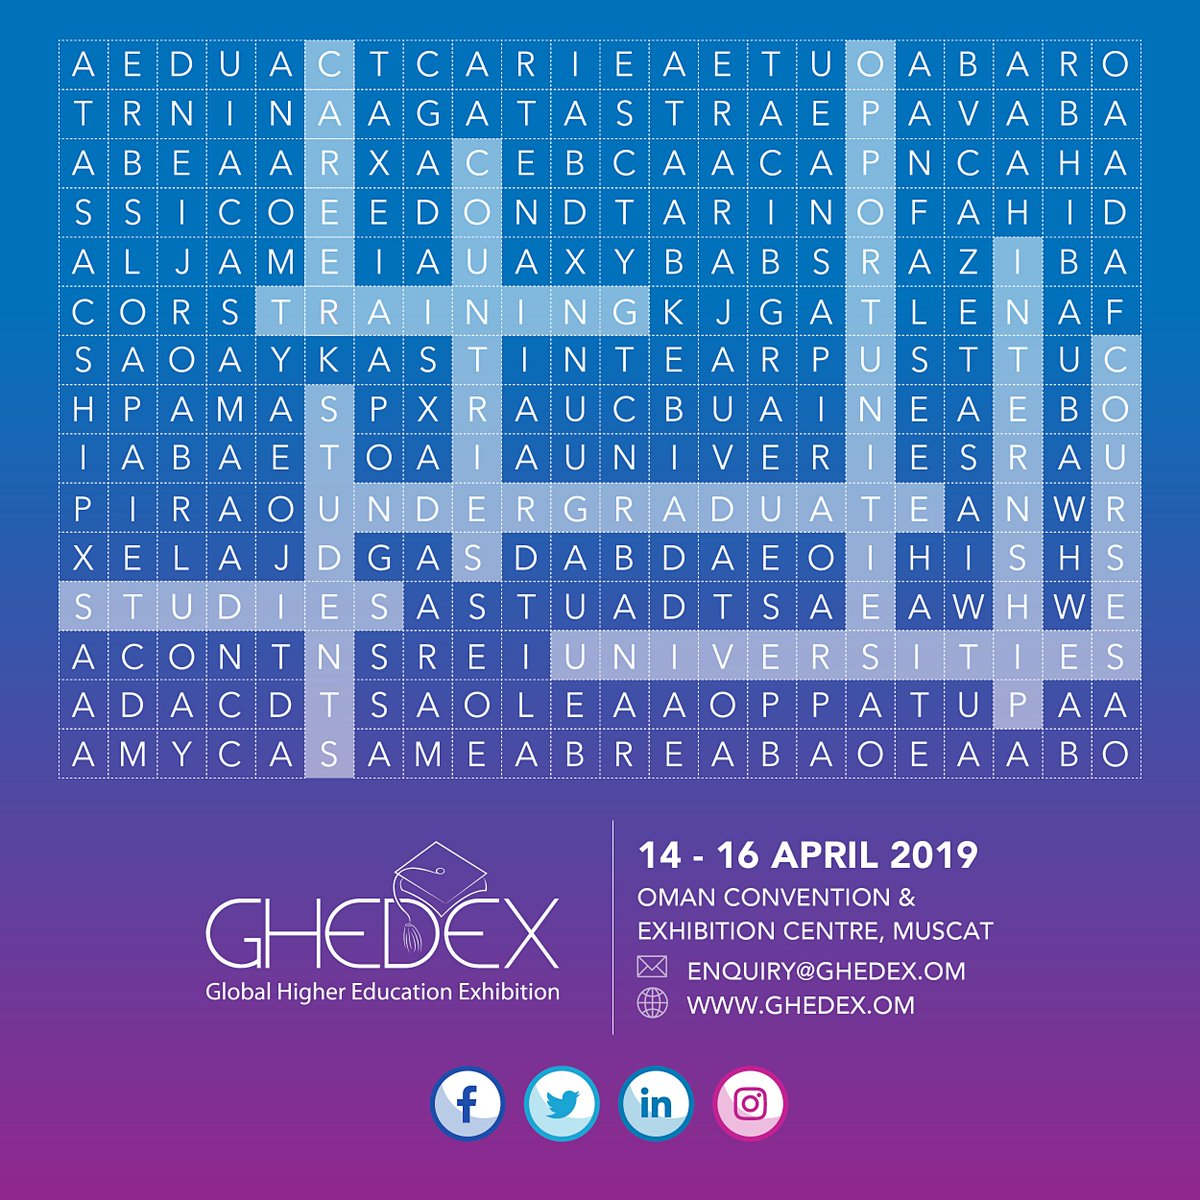 GHEDEX Oman on Twitter: